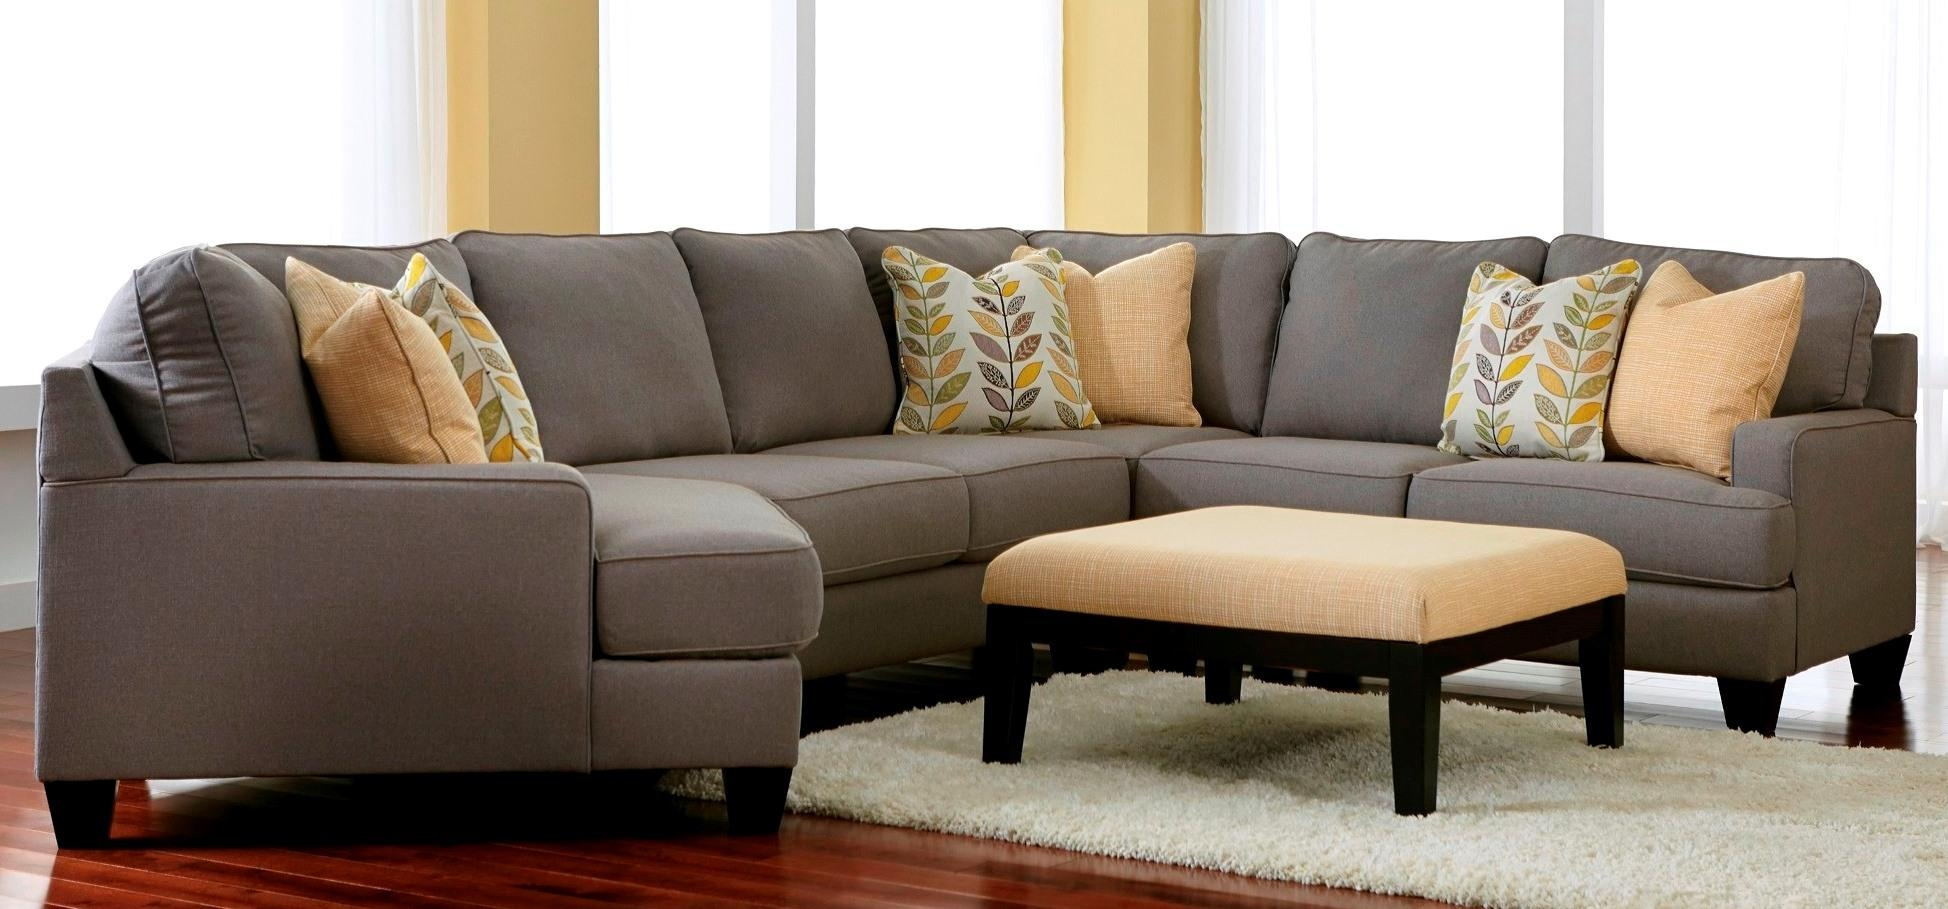 Chamberly Alloy Laf Cuddler Sectional Regarding Sectional Cuddler (View 16 of 20)